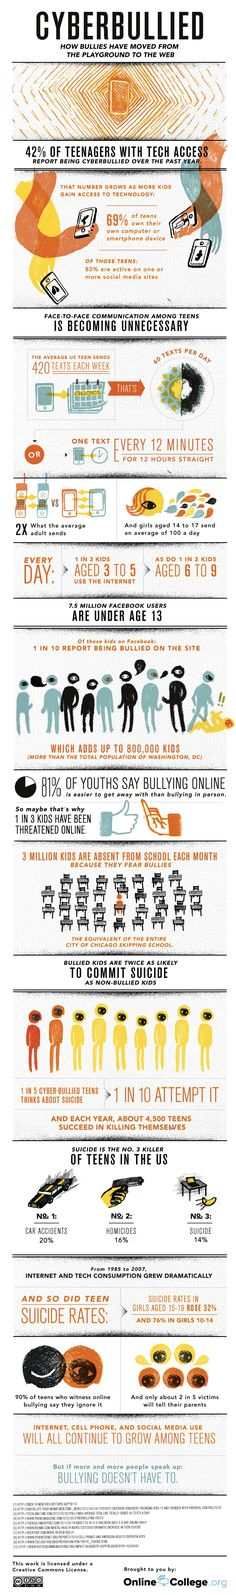 CYBERBULLYING: How bullies have moved from the playground to the web